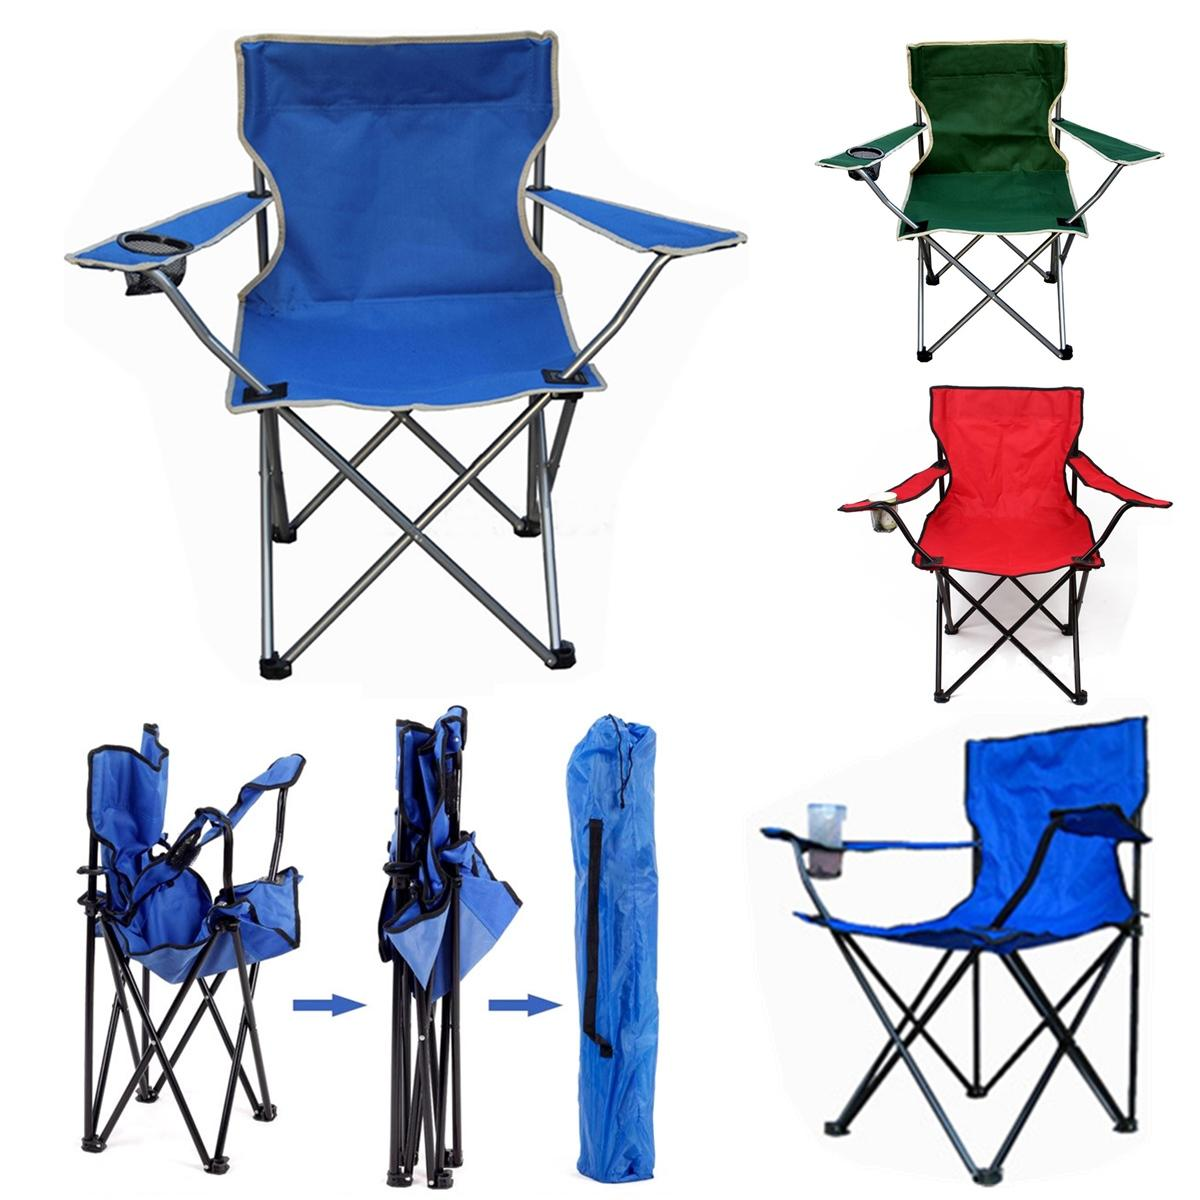 Beach Folding Chairs Outdoor Portable Folding Chair Fishing Camping Beach Picnic Chair Seat With Cup Holder